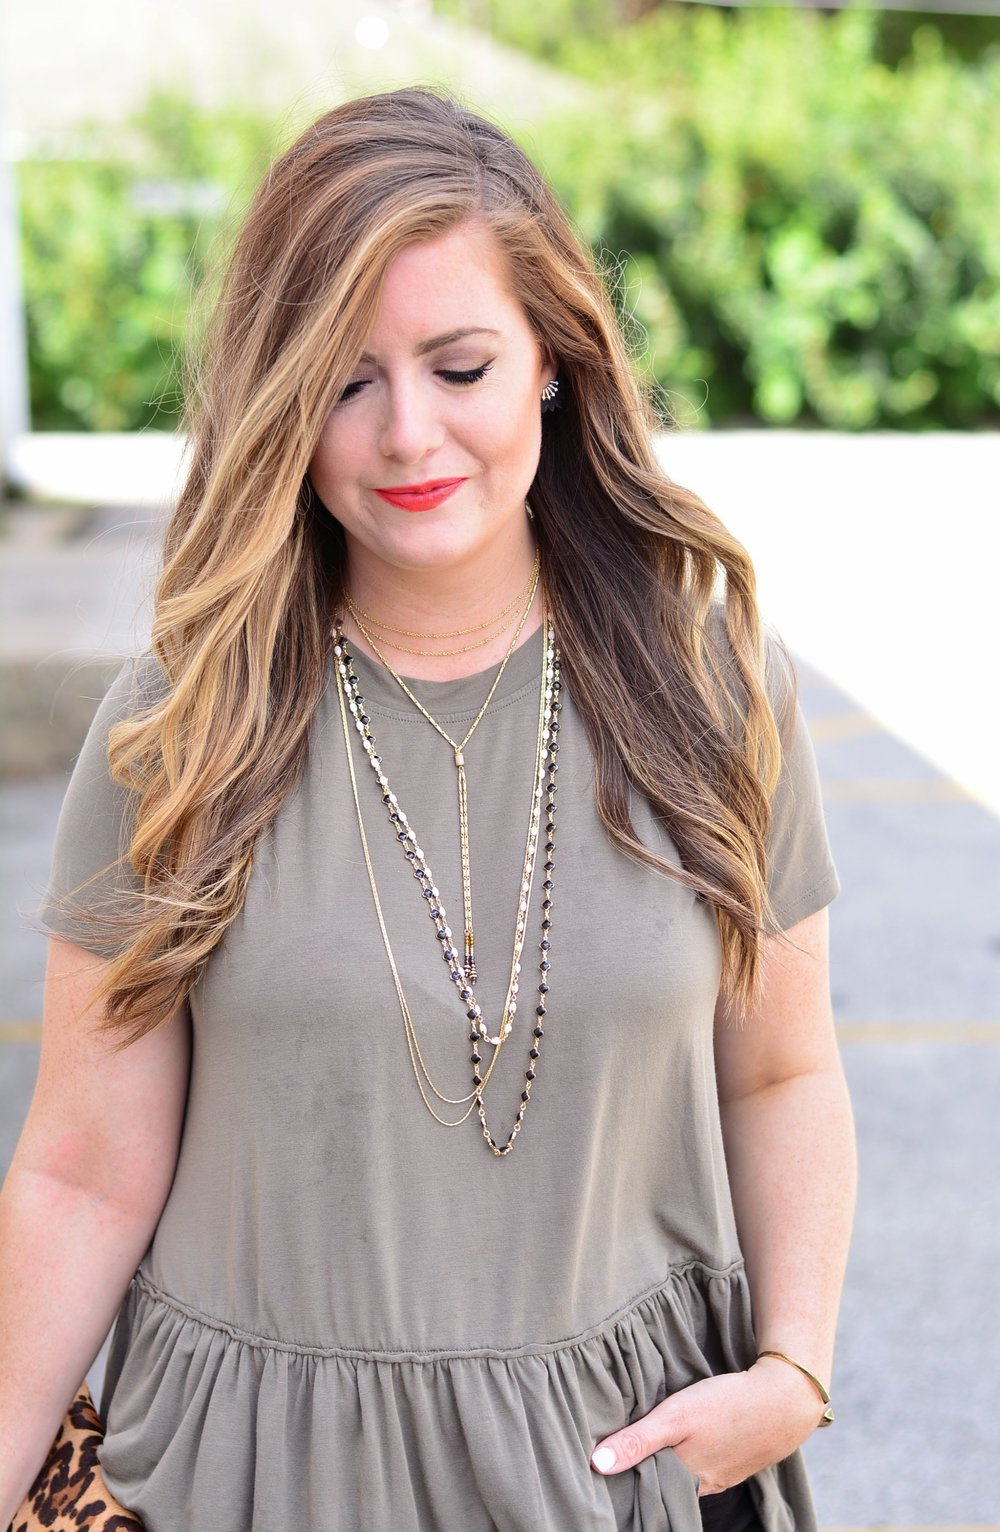 Stella and Dot Terney Layered Necklace